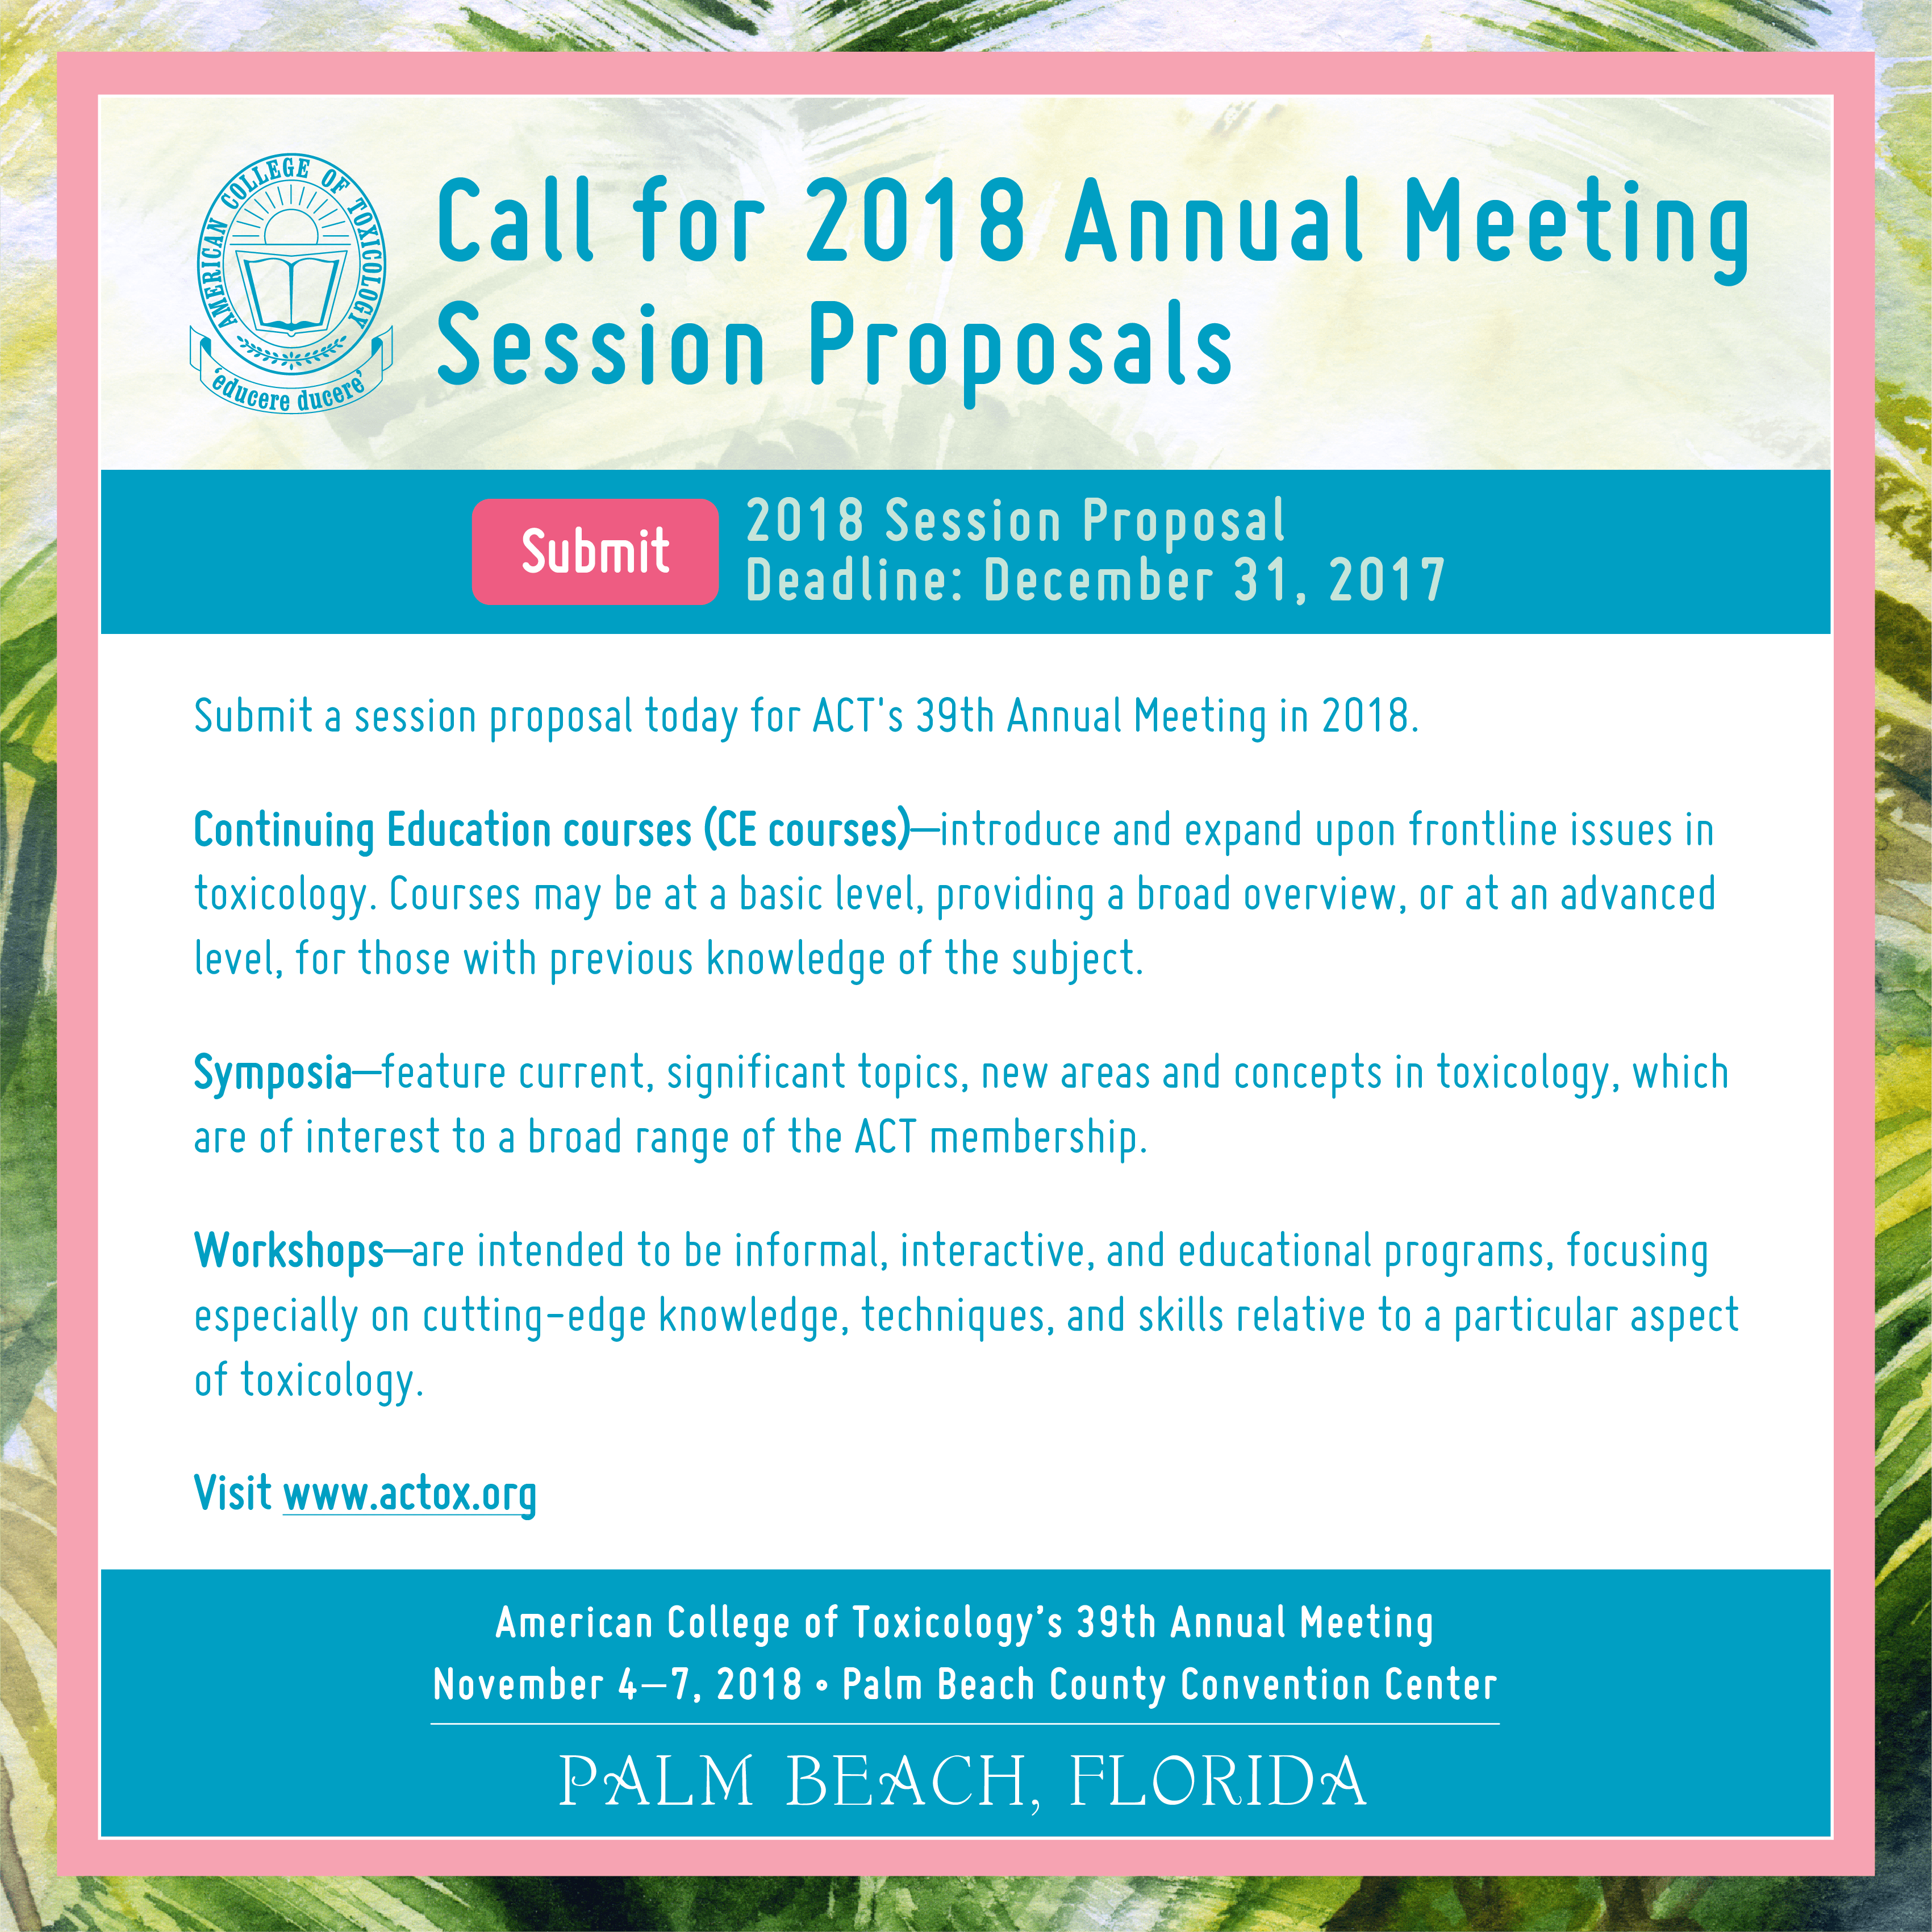 ACT 2018 Annual Meeting Session Proposal